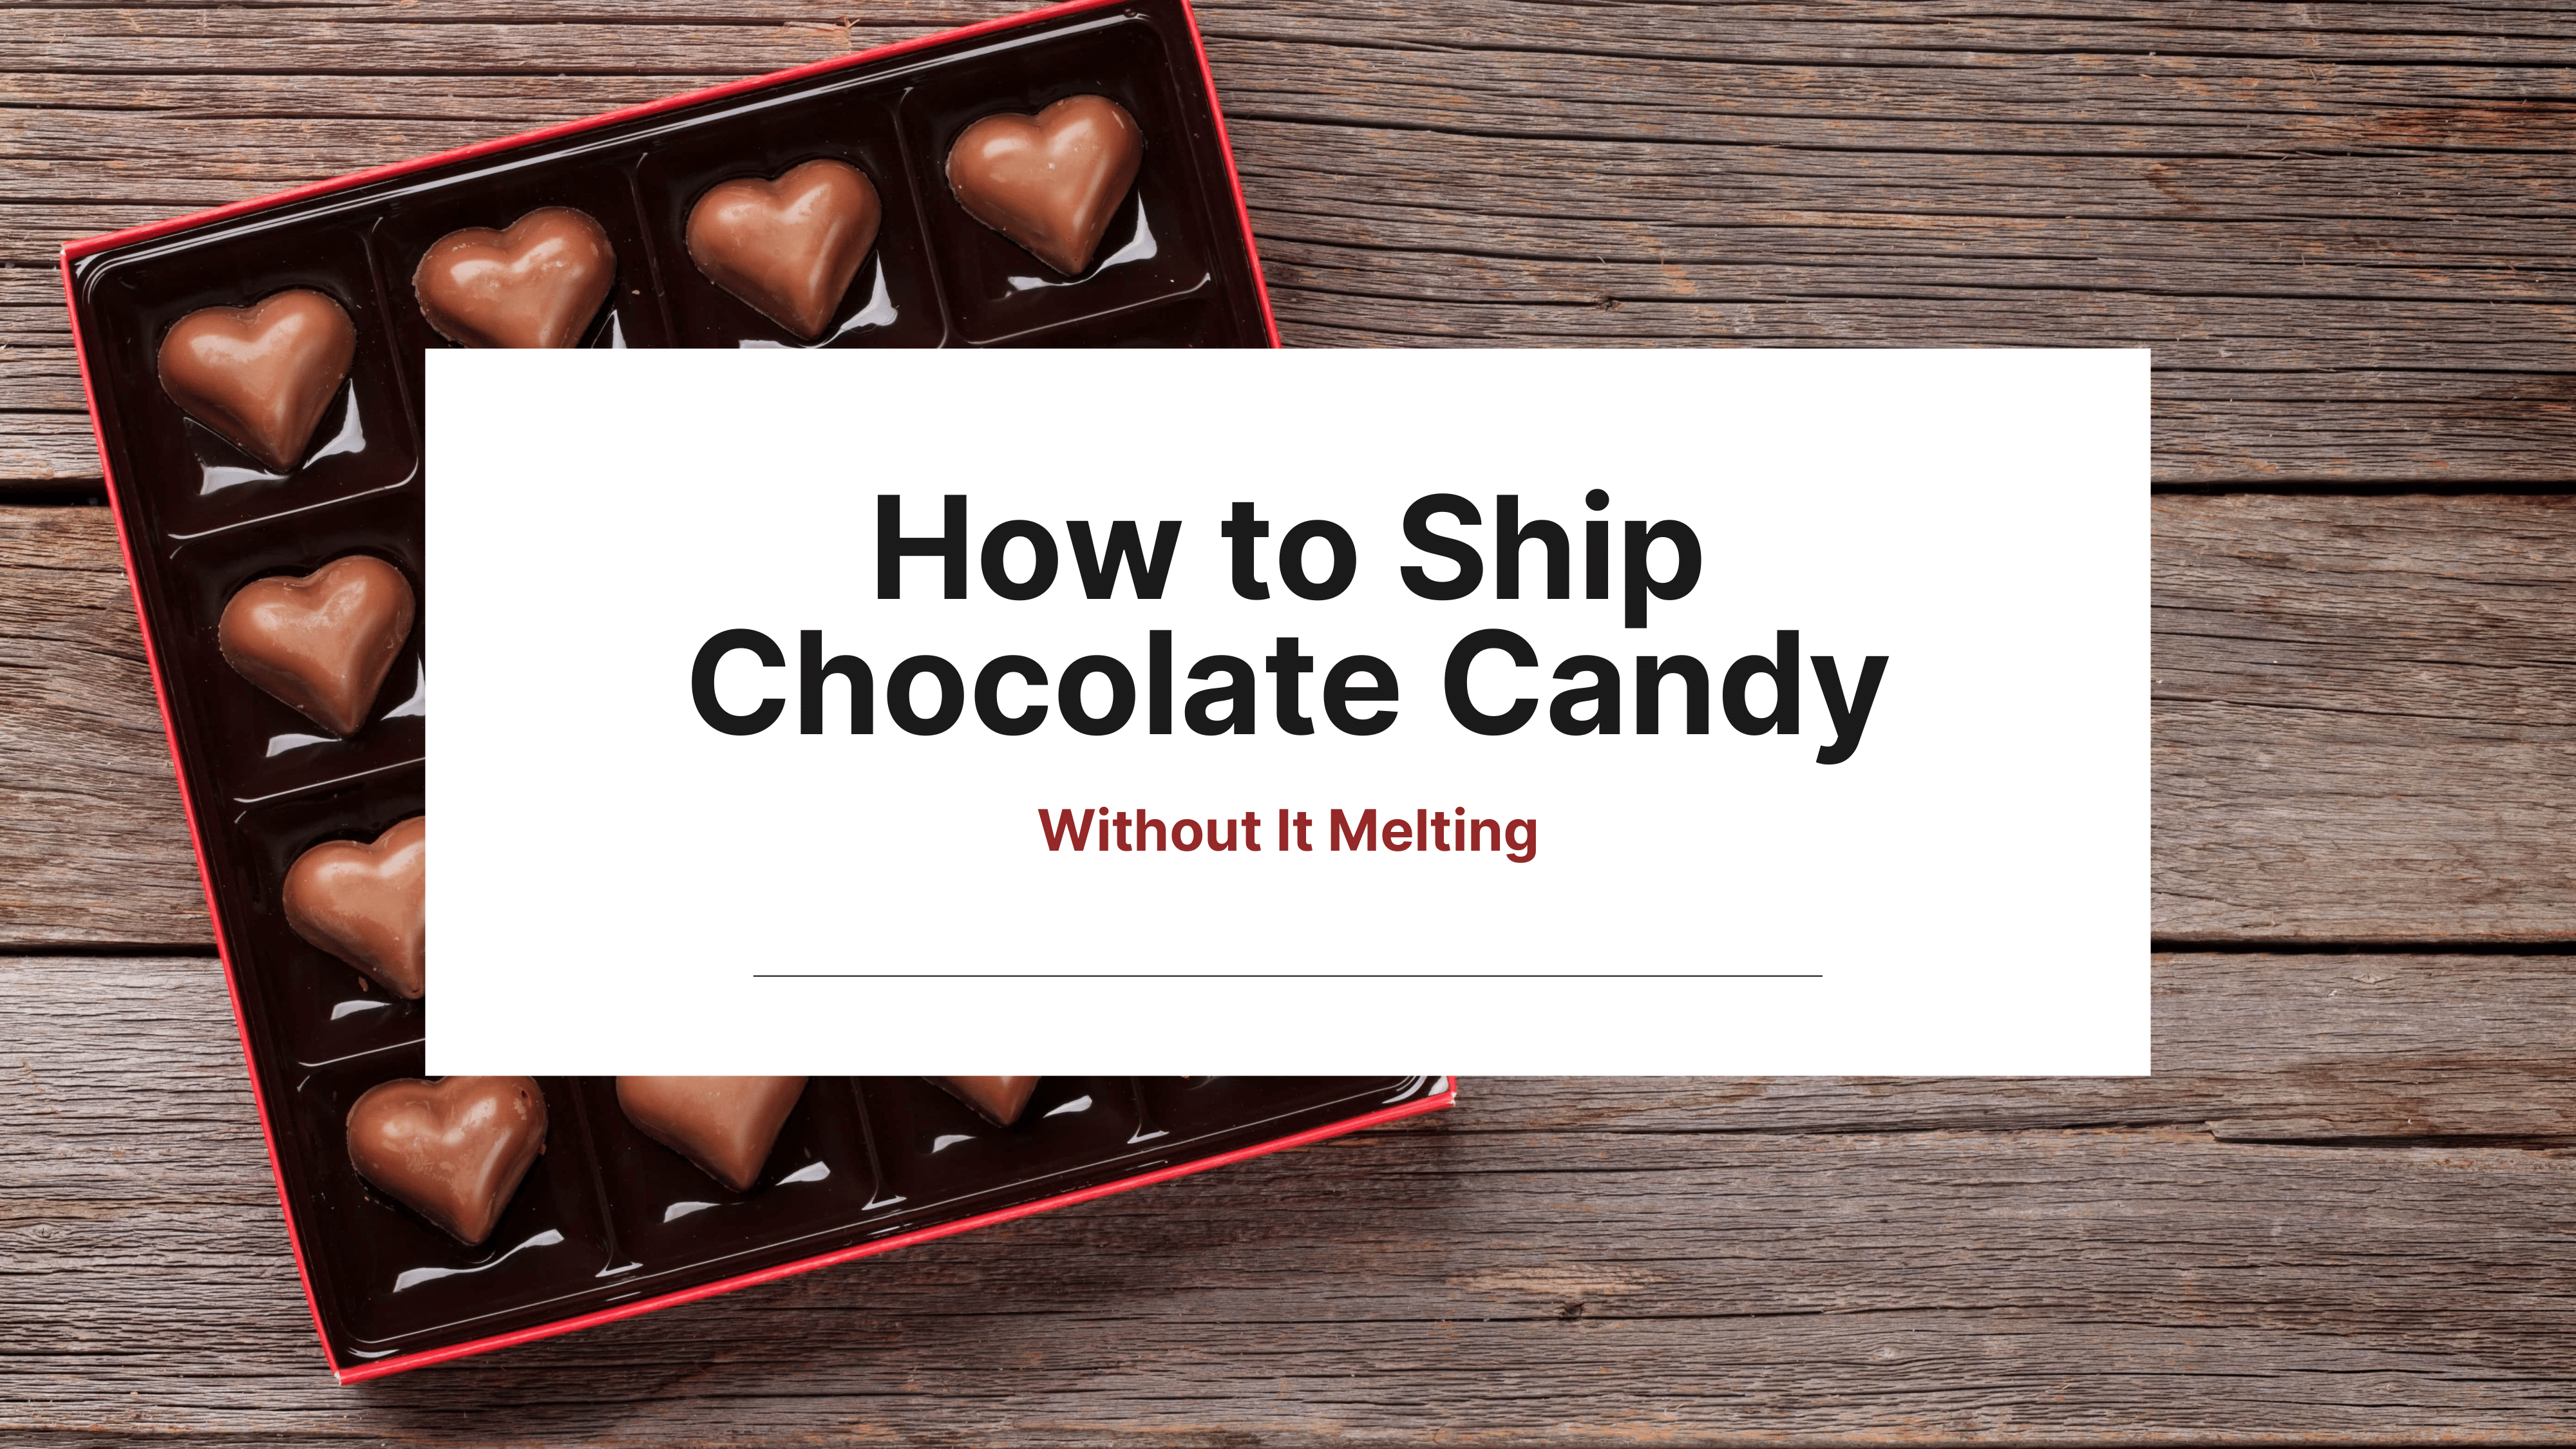 how-to-ship-chocolate-candy-without-it-melting